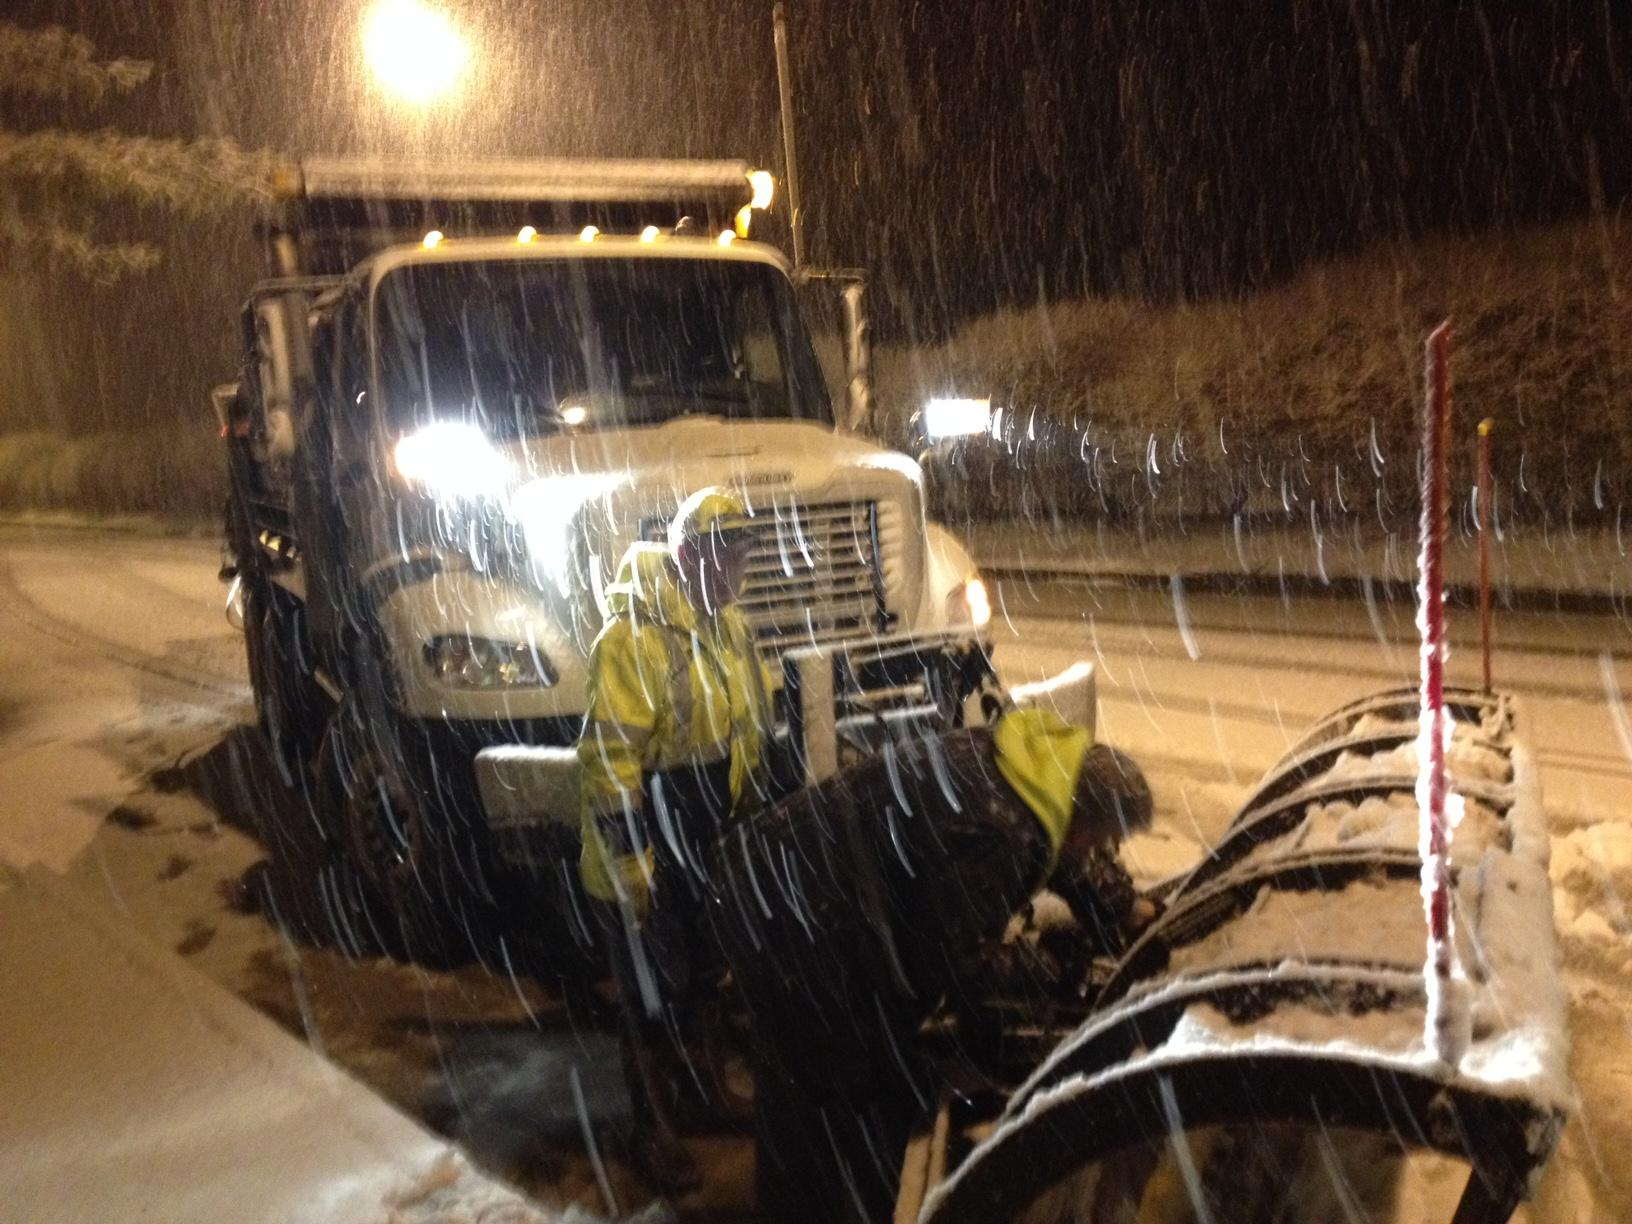 Kentucky Department of Highways crewmen on the road in Rowan County Wednesday night during the snow, pulled over as a mechanic works on a plow blade.